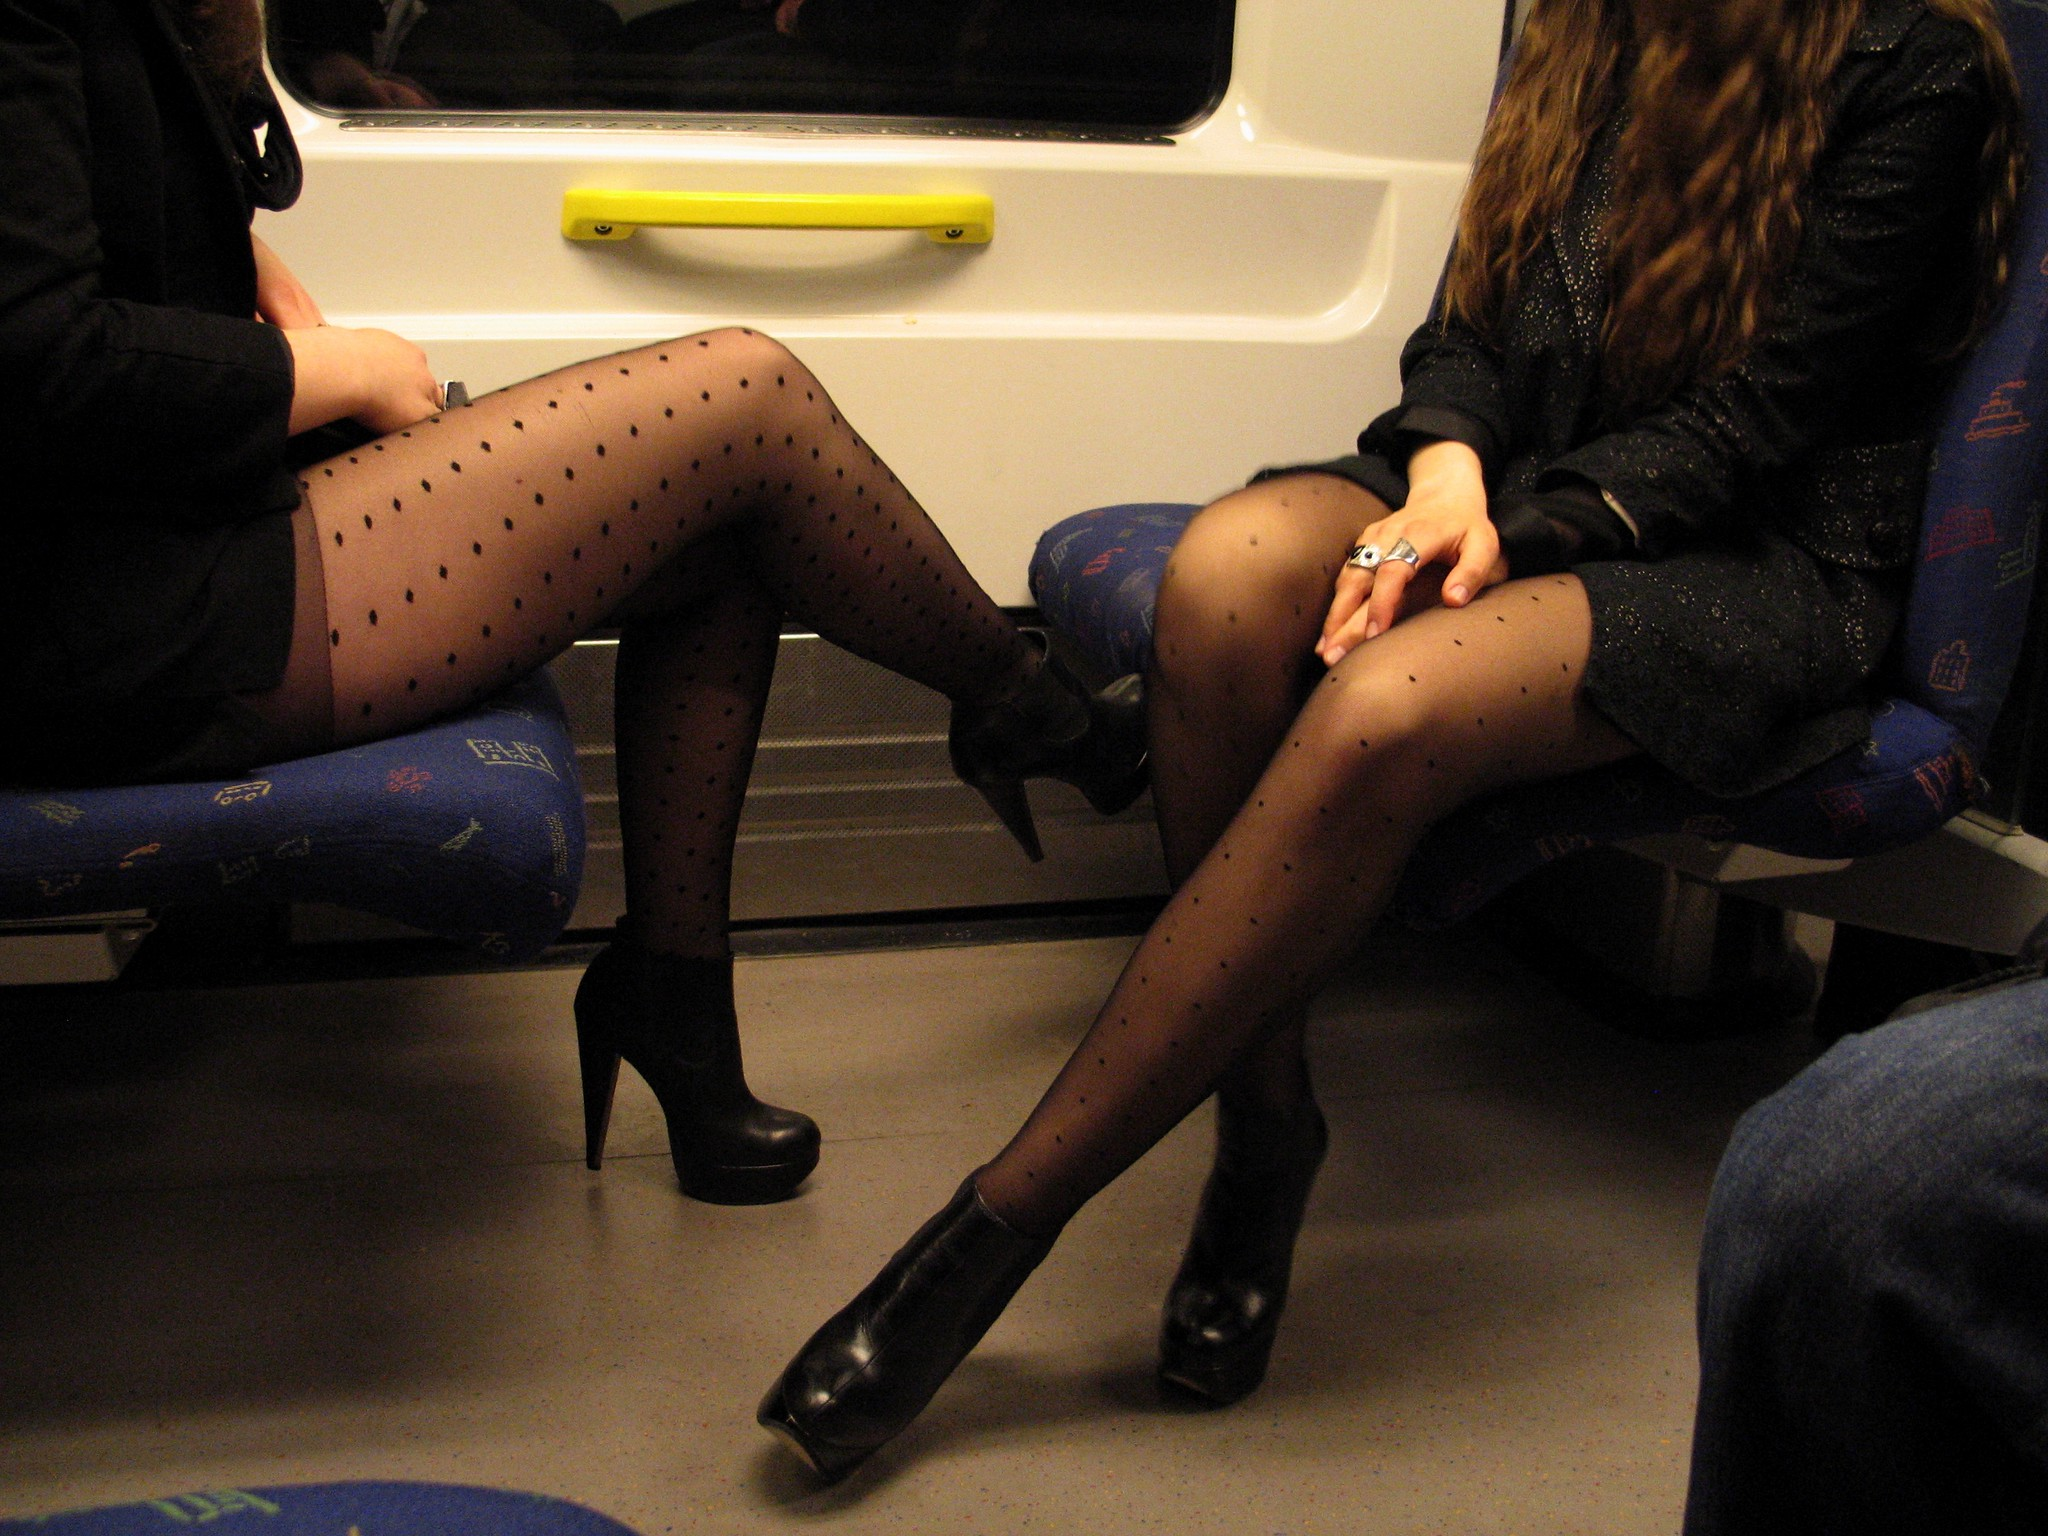 trains with pantyhose on the side